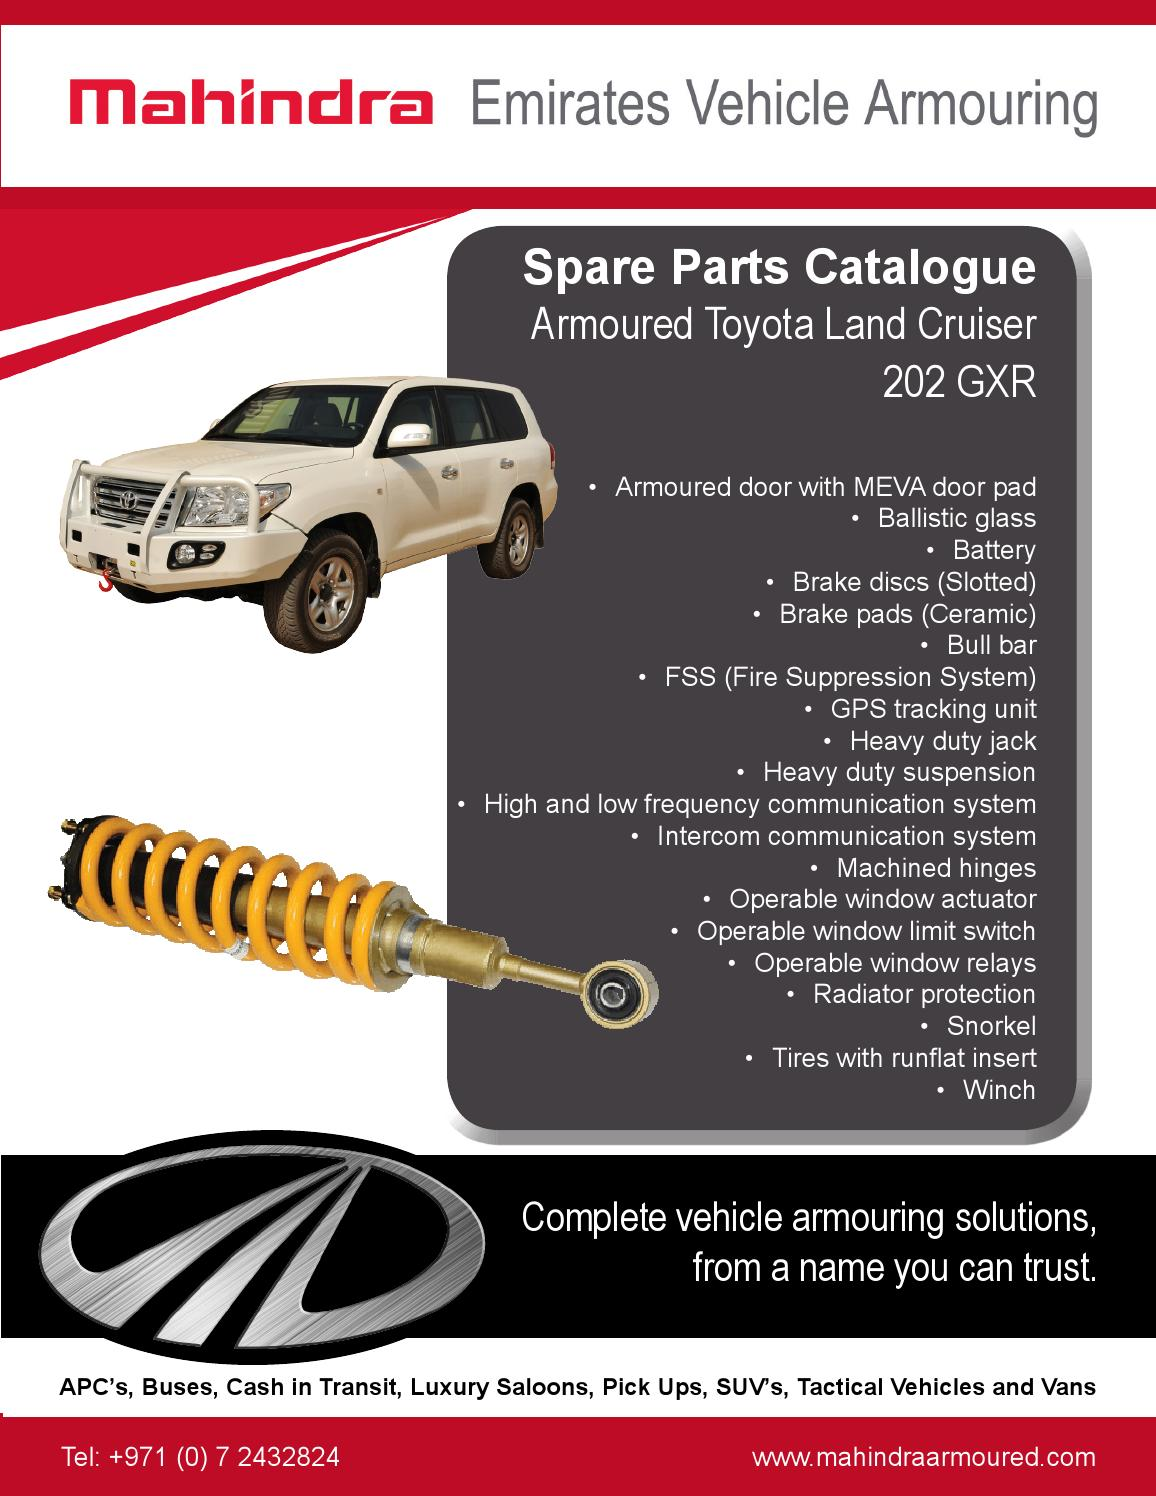 Toyota Land Cruiser 202 GXR spare parts catalogue by MEVA